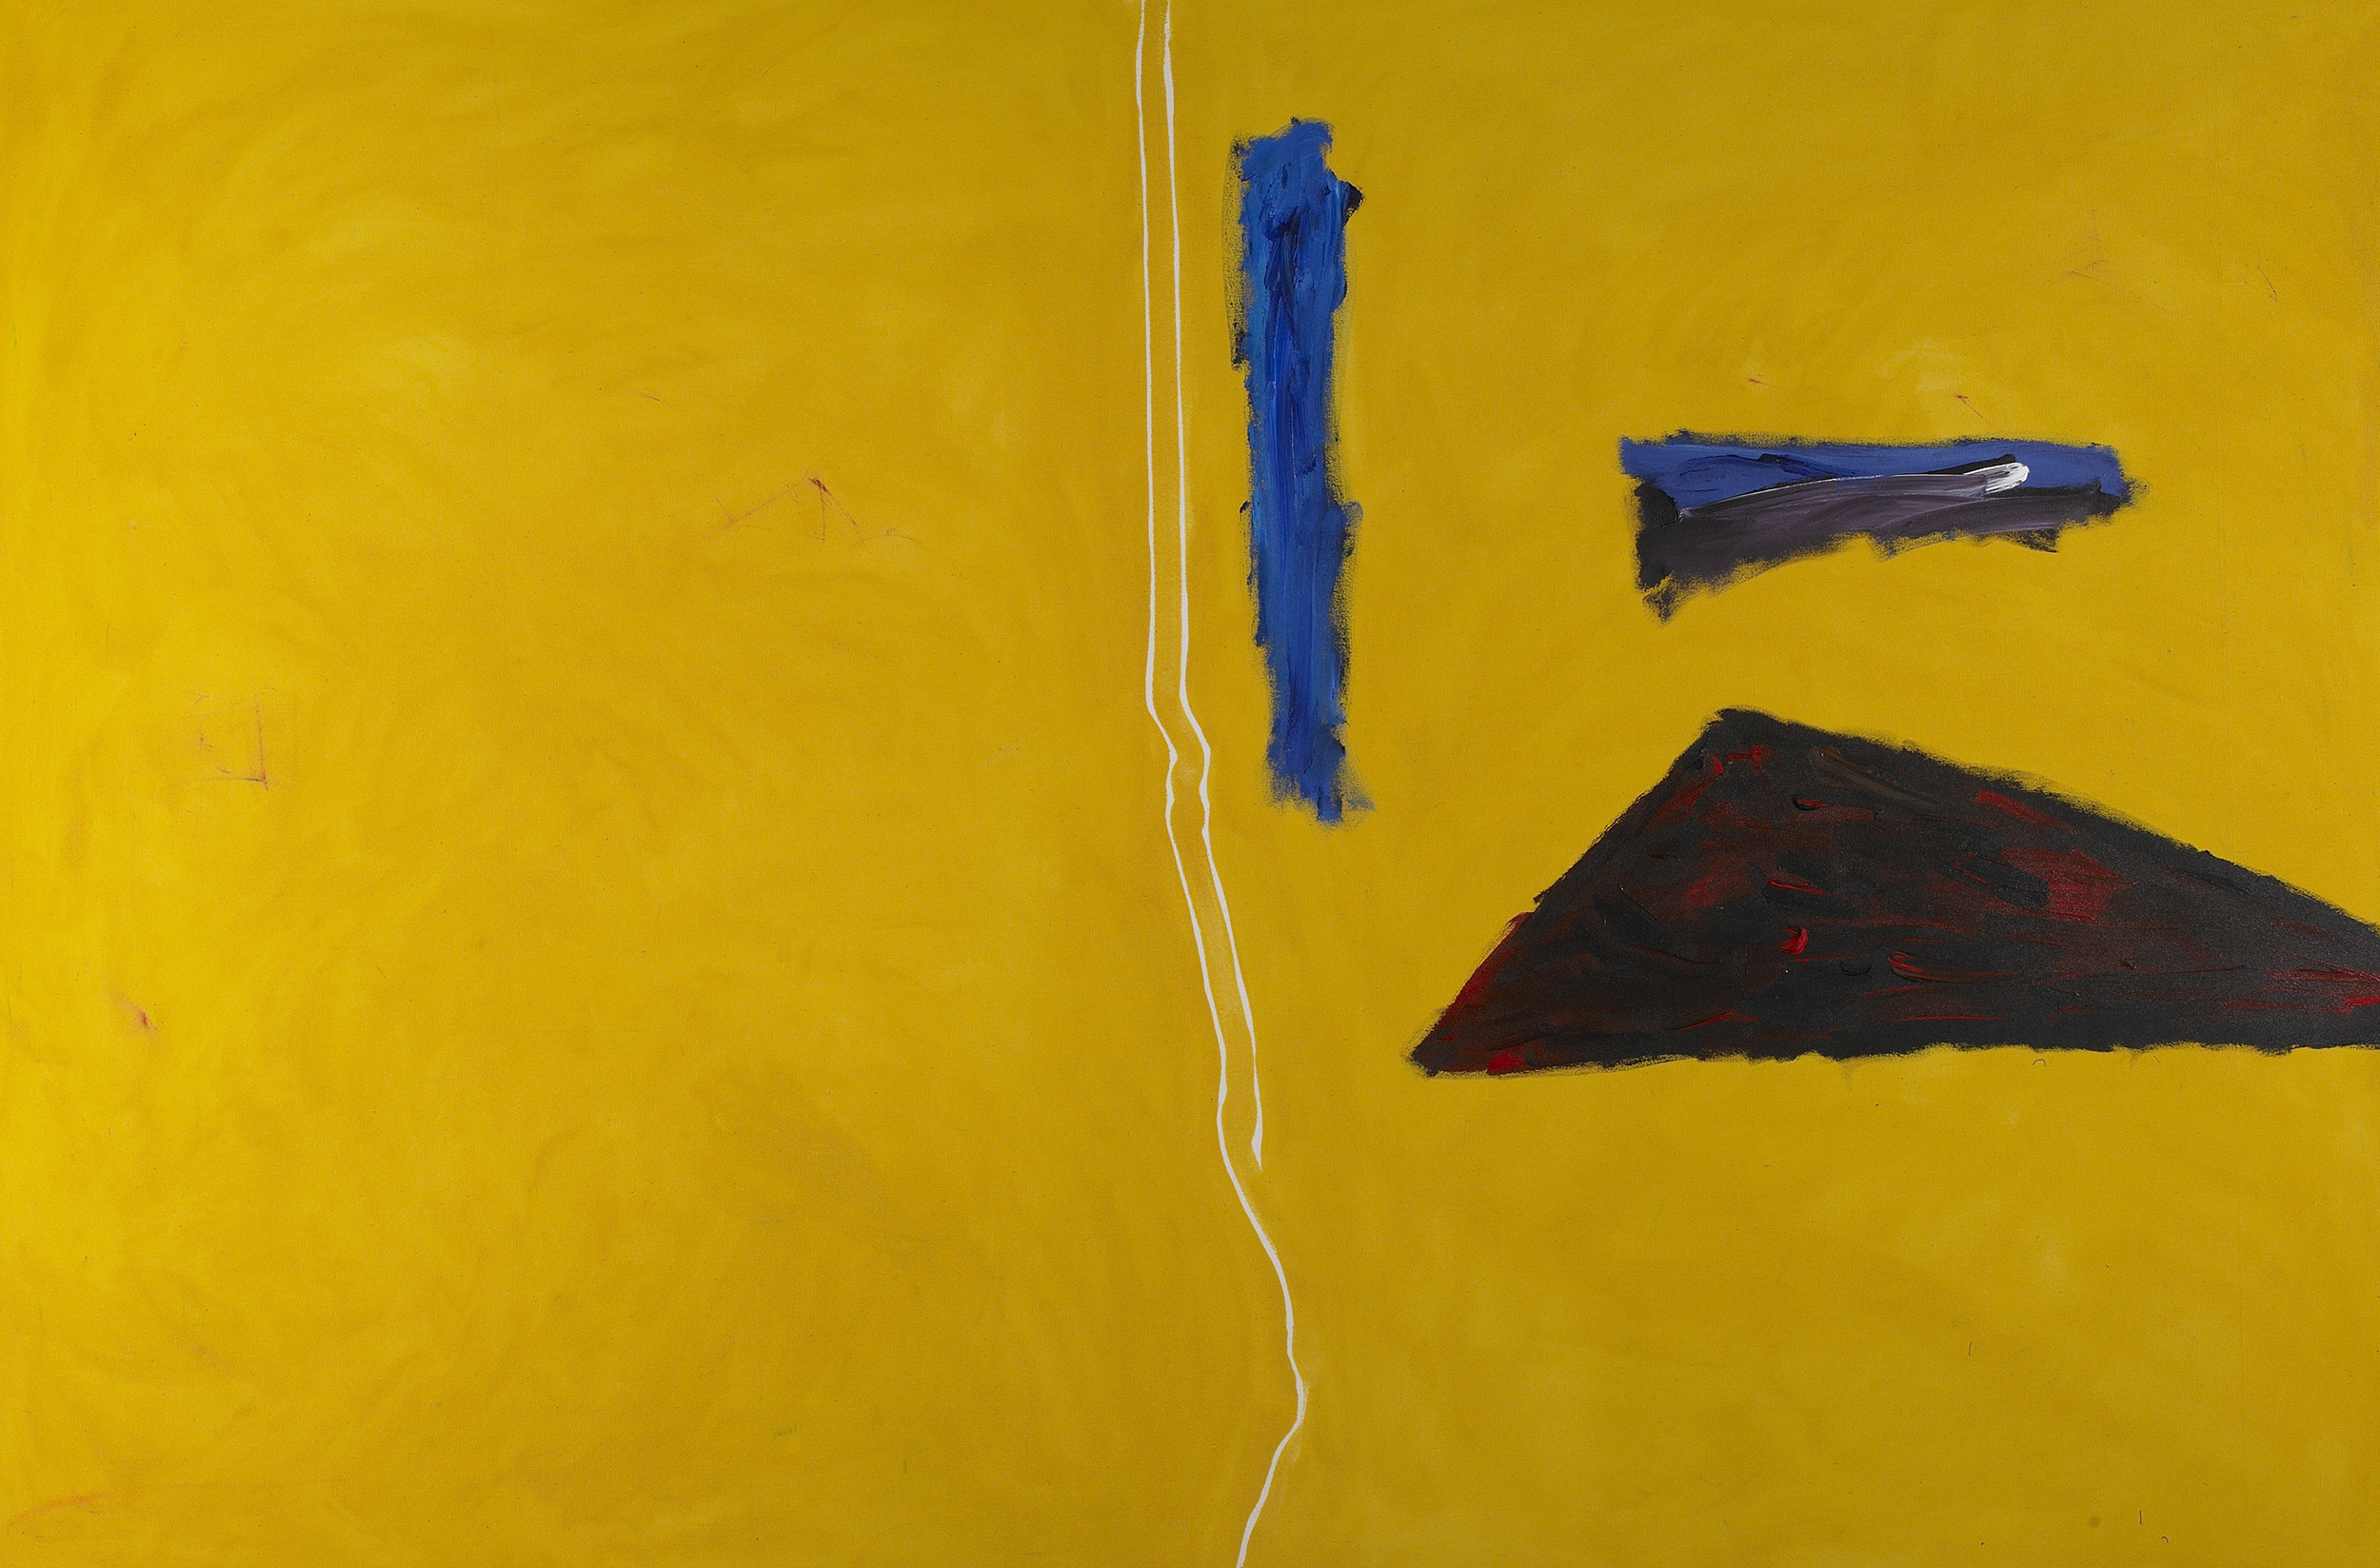 Algarve - 4  , Acrylic on canvas, 1982, 67 x 100 inches